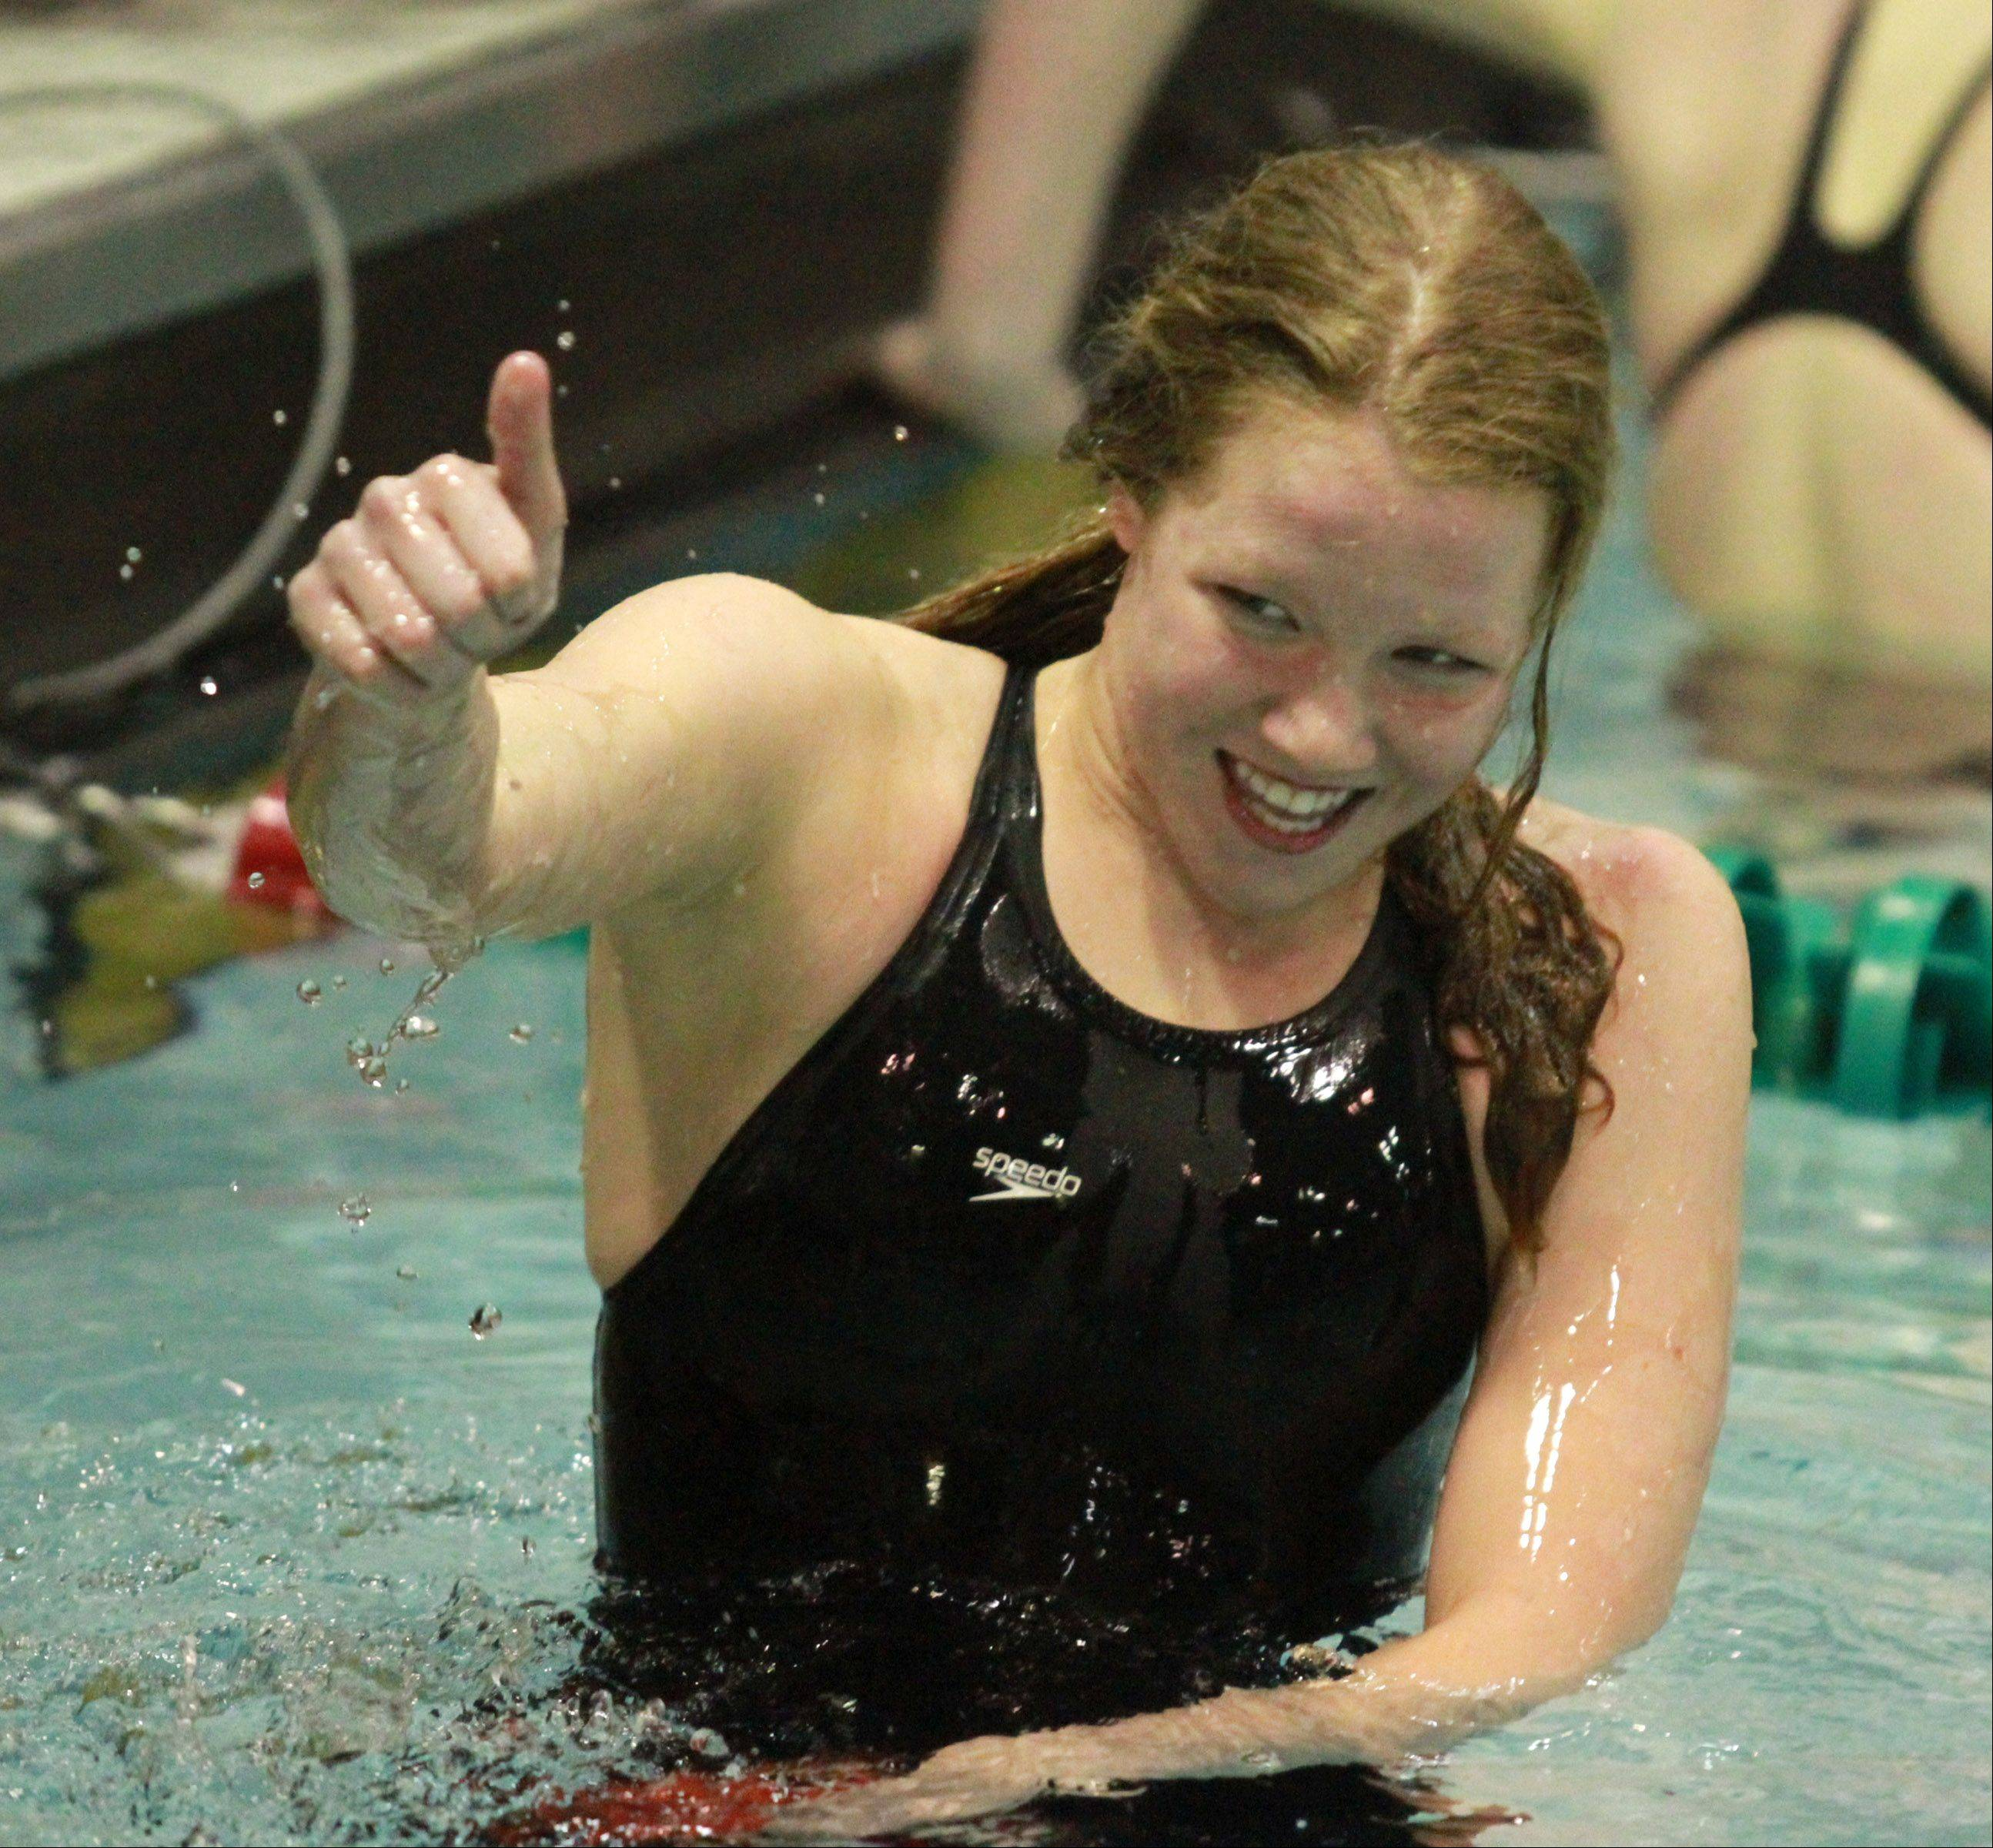 Mundelein's Erin Falconer celebrates placing 2nd in the 100 yard at the girls state swimming finals on Saturday in Winnetka.